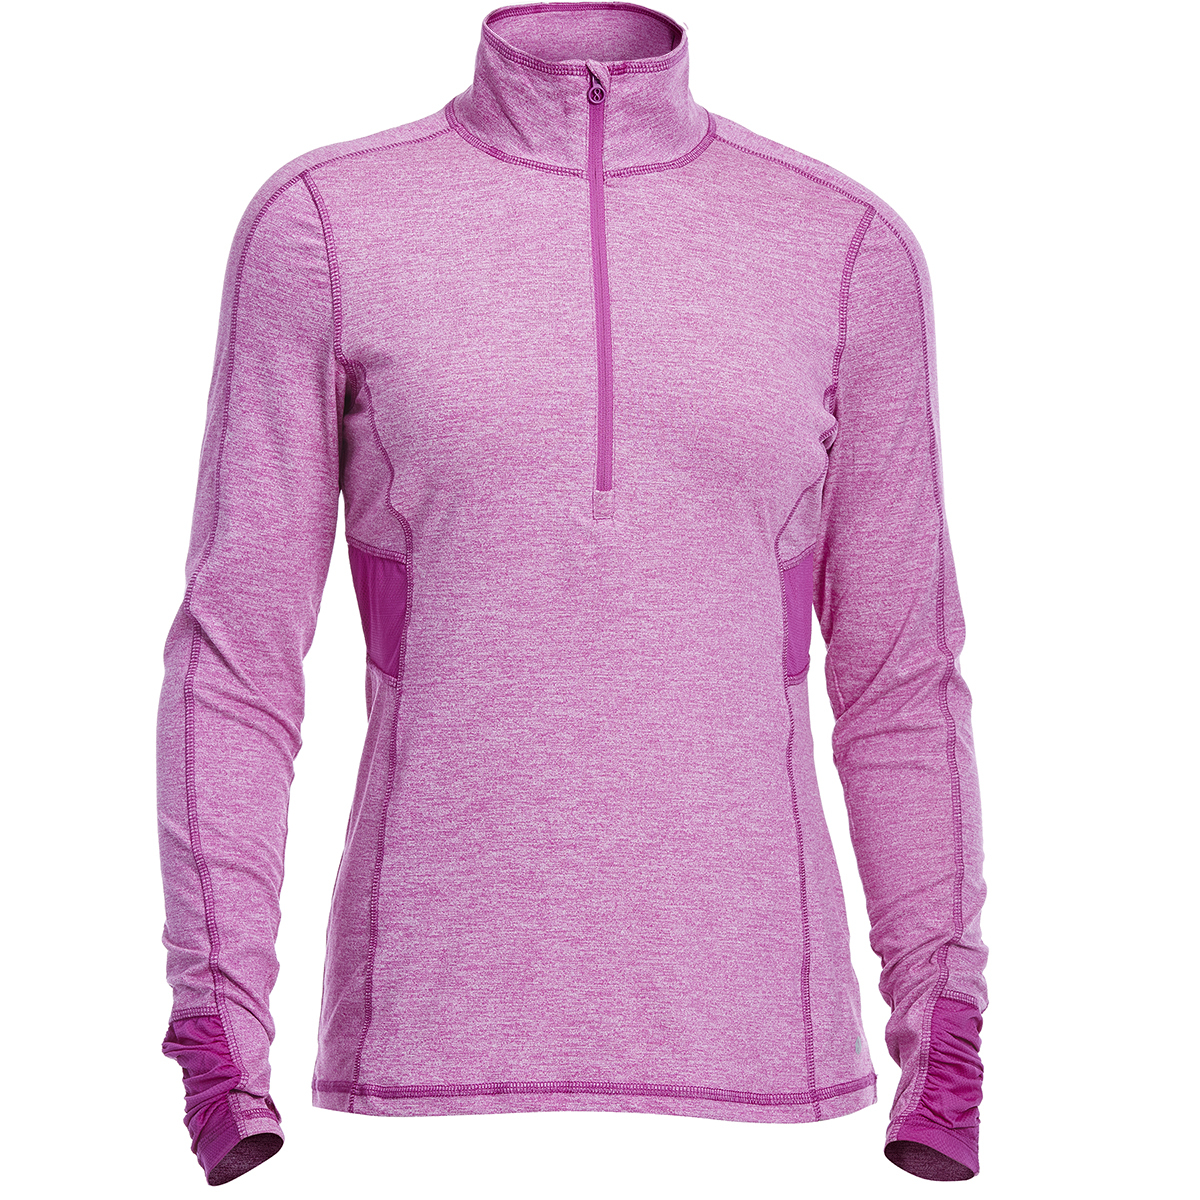 Layer 8 Women's Striated Cold Gear 1/4 Zip Pullover - Red, S